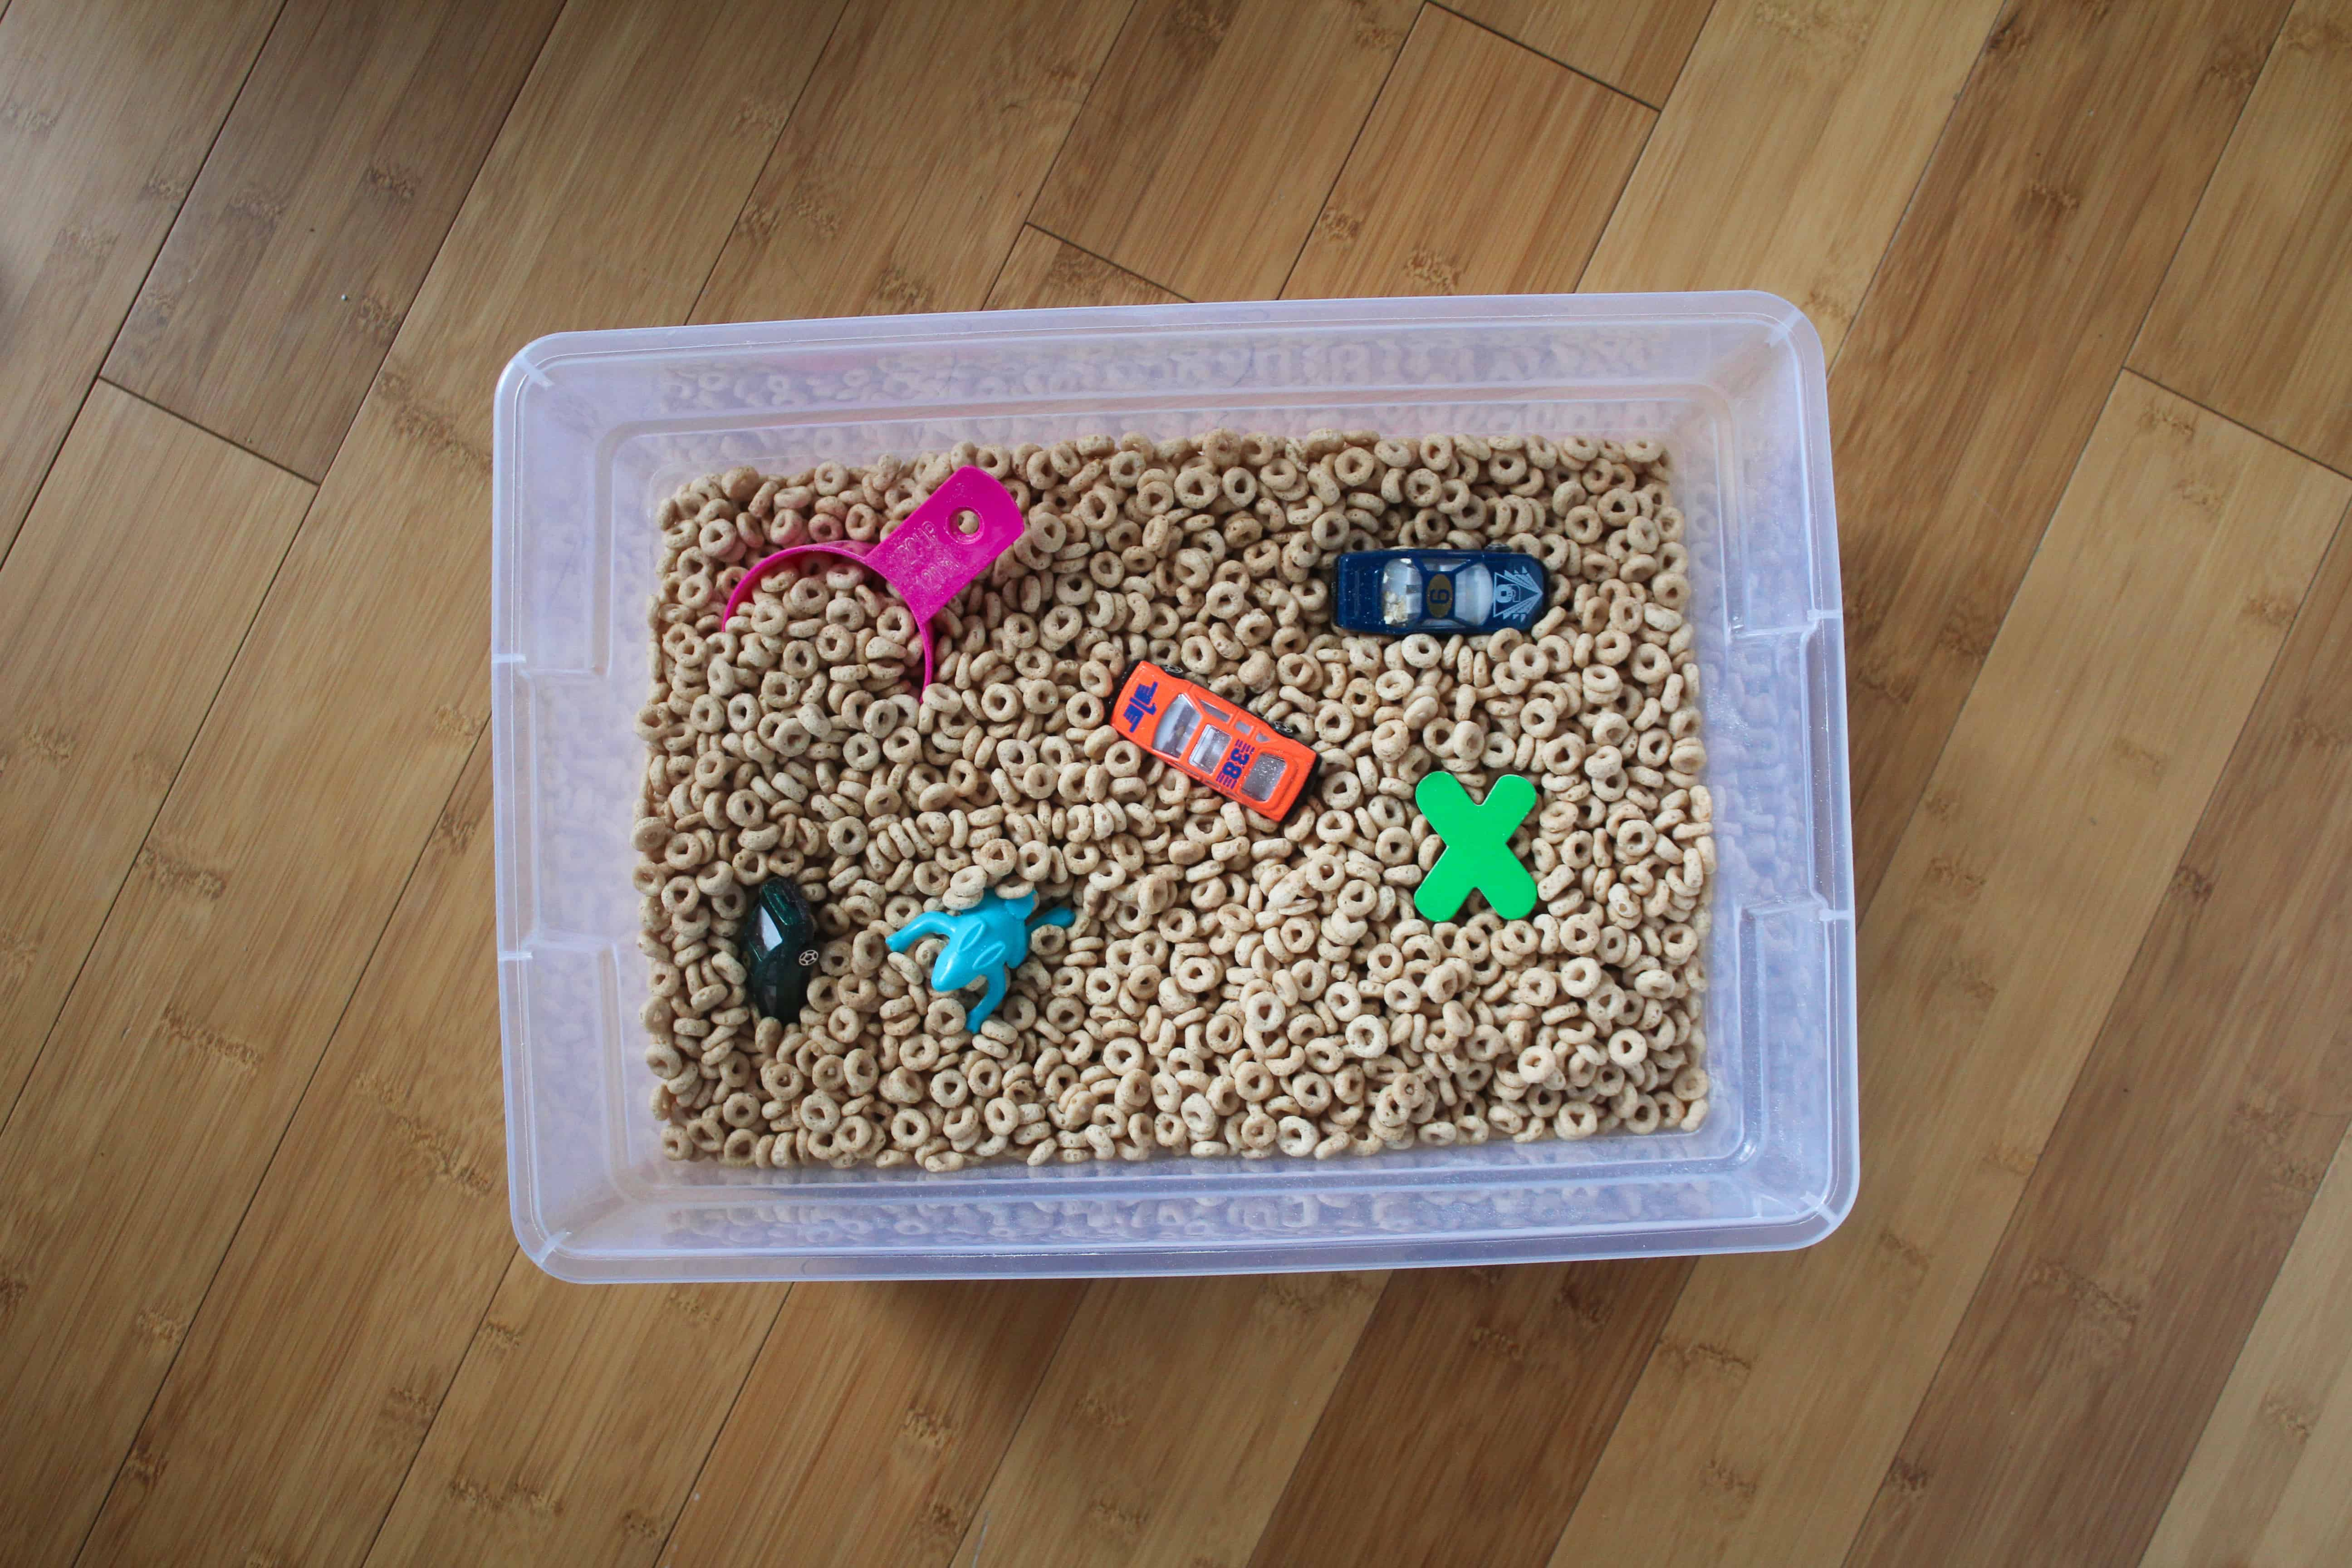 Cheerio sensory bin for toddlers. Fun indoor toddler activity